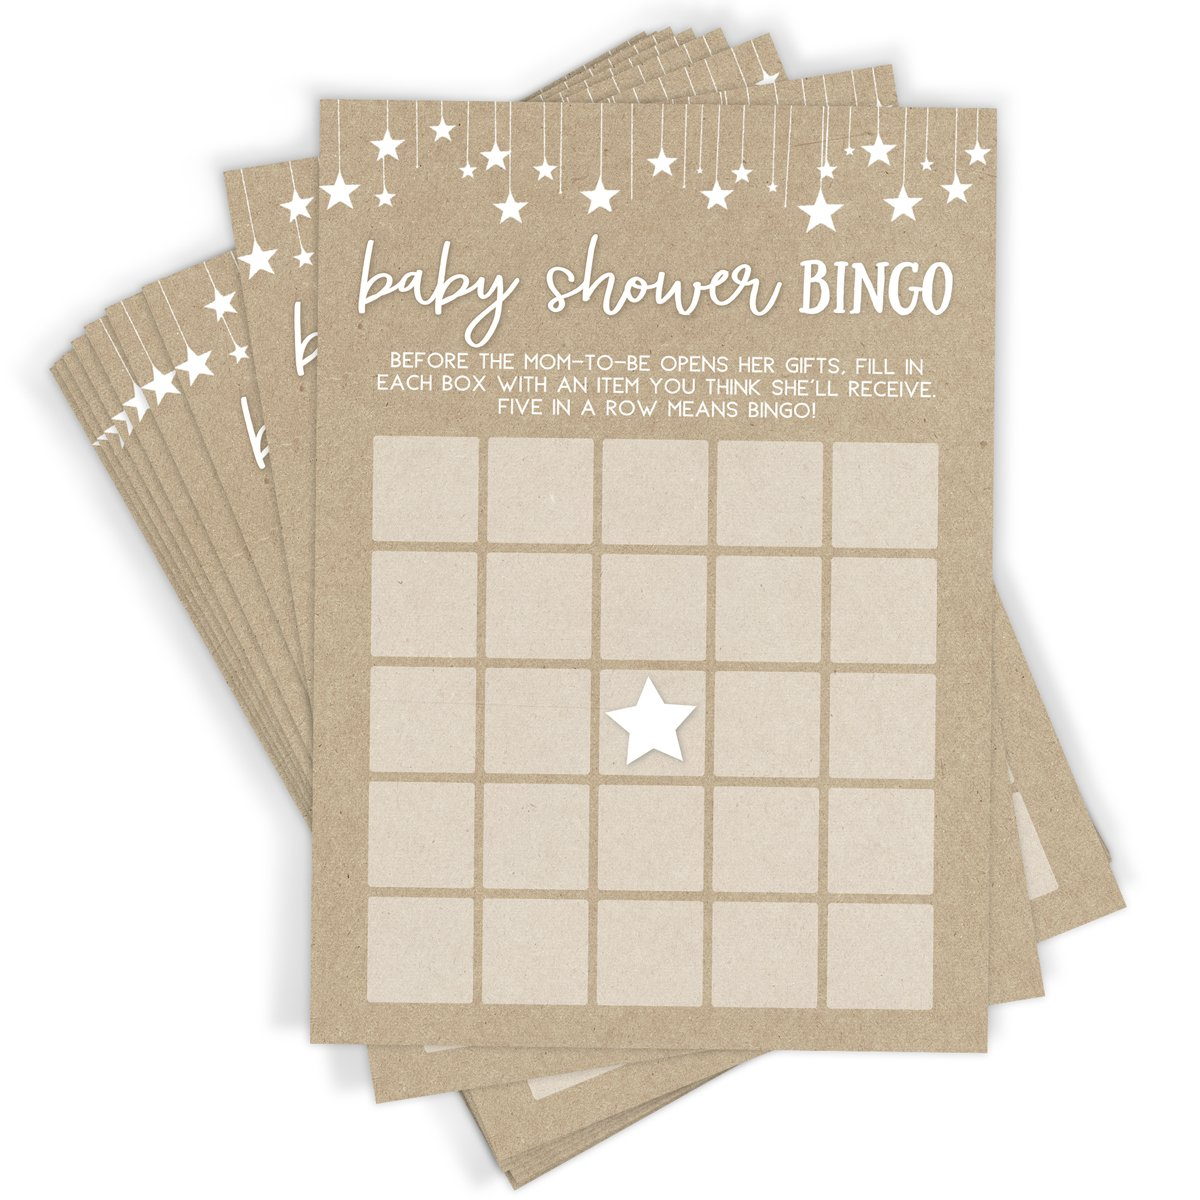 Baby Shower Bingo Game | 50 Cards | Fun Bingo Activity for Baby Showers by Printed Party